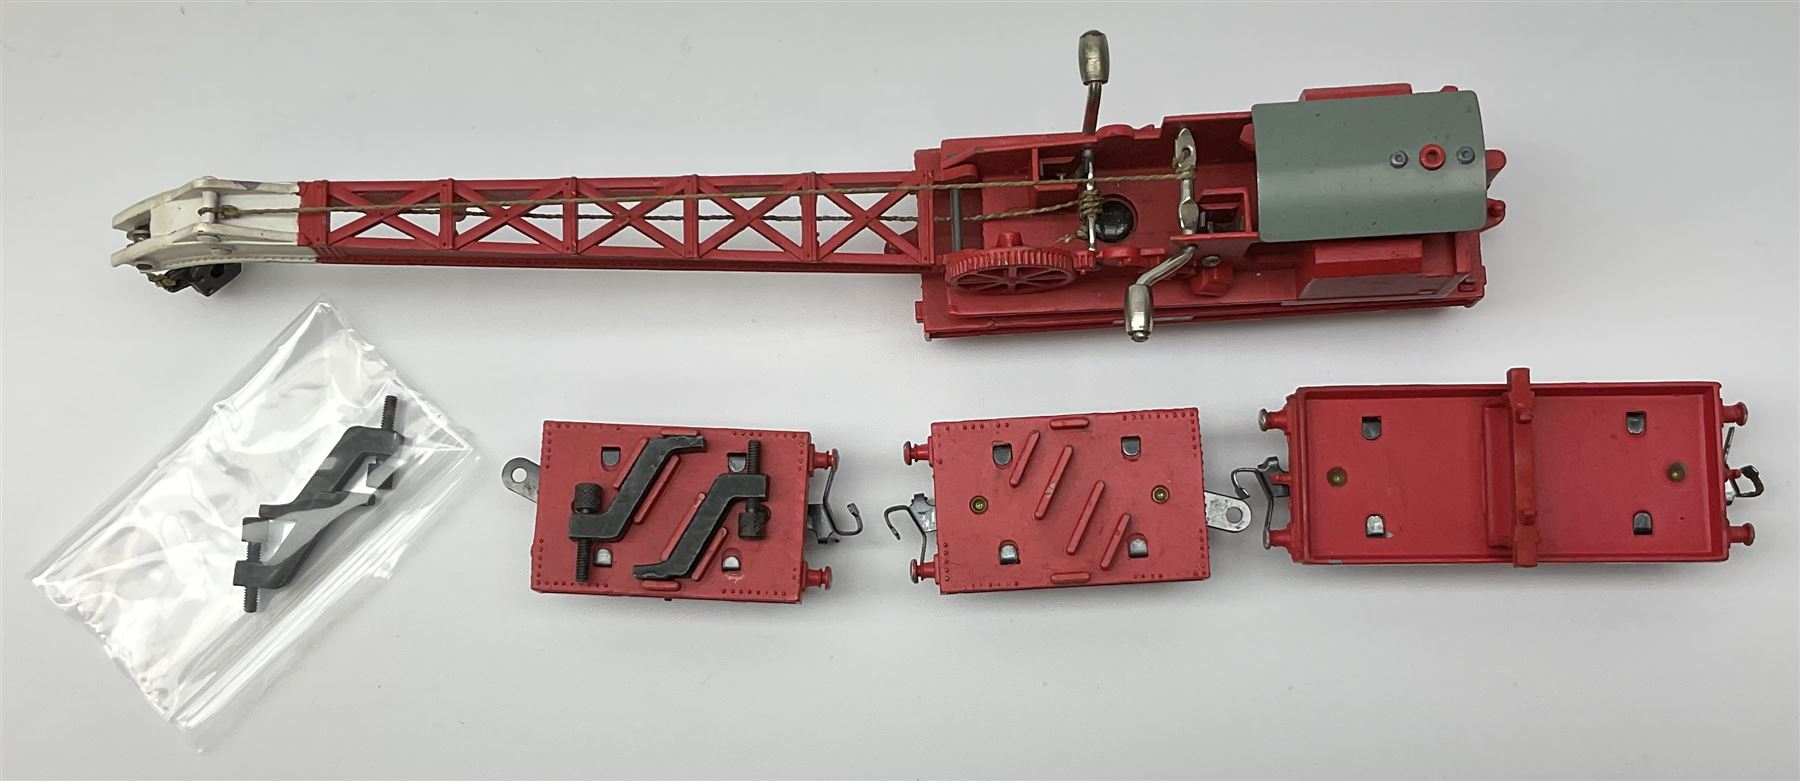 Hornby Dublo - Breakdown Crane No.4062 with screw jacks in plain red box with end label; D1 Girder B - Image 4 of 11